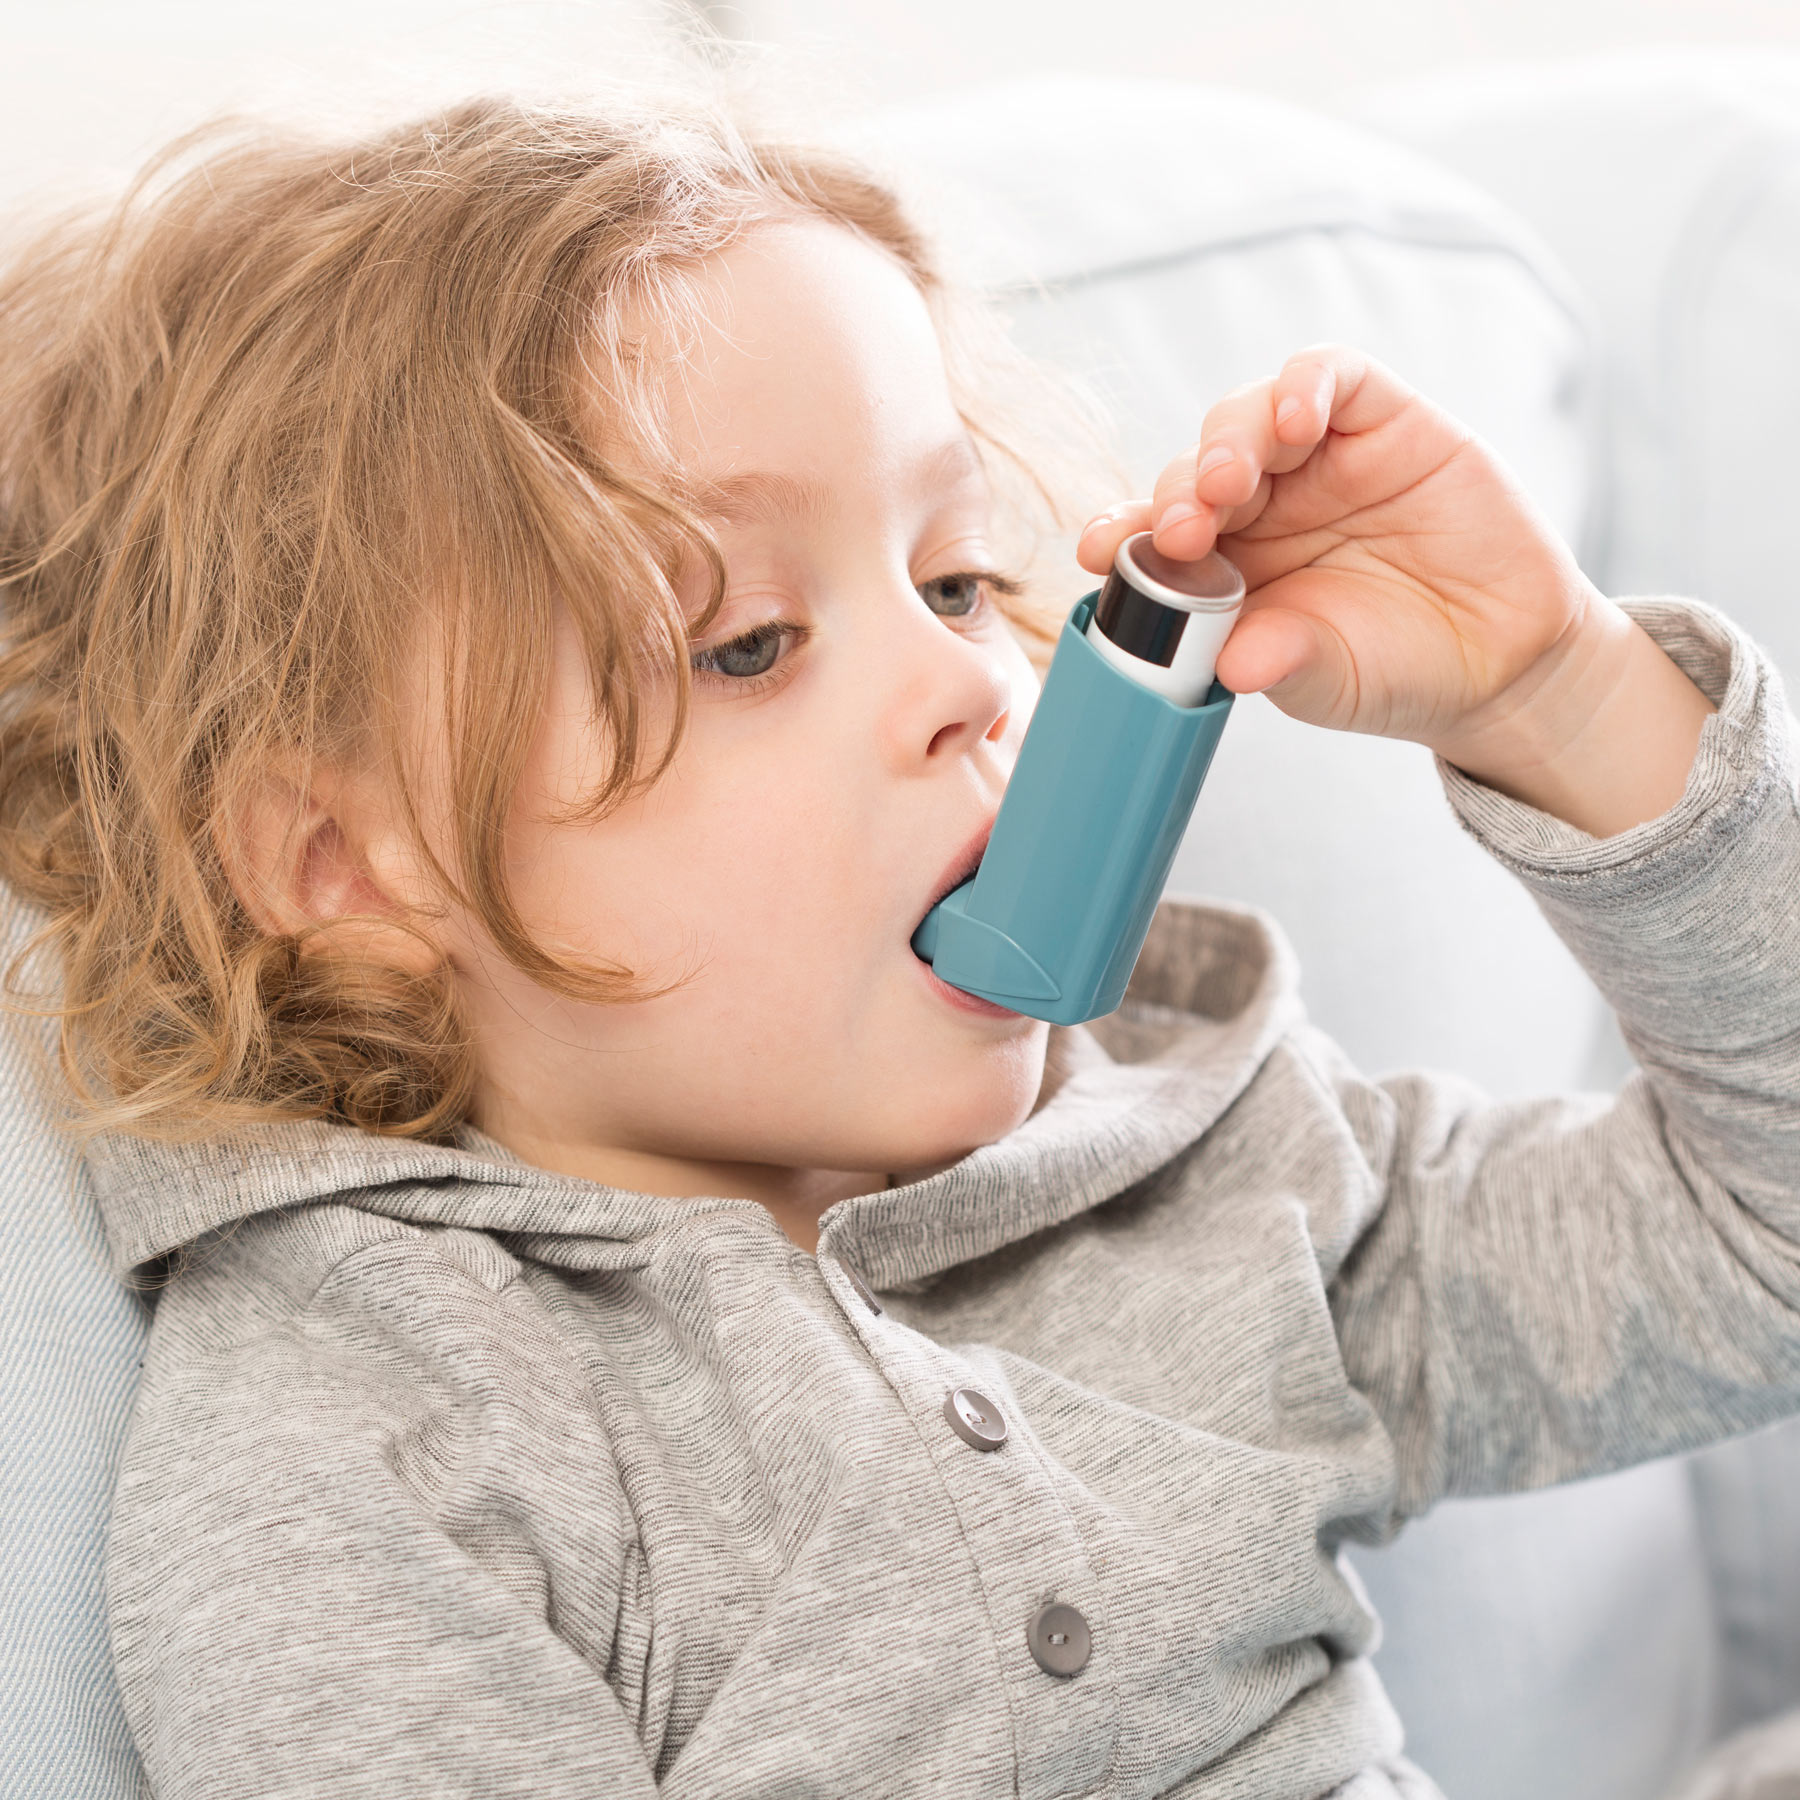 small-but-conscious-how-to-treat-asthma-PWH8JJA